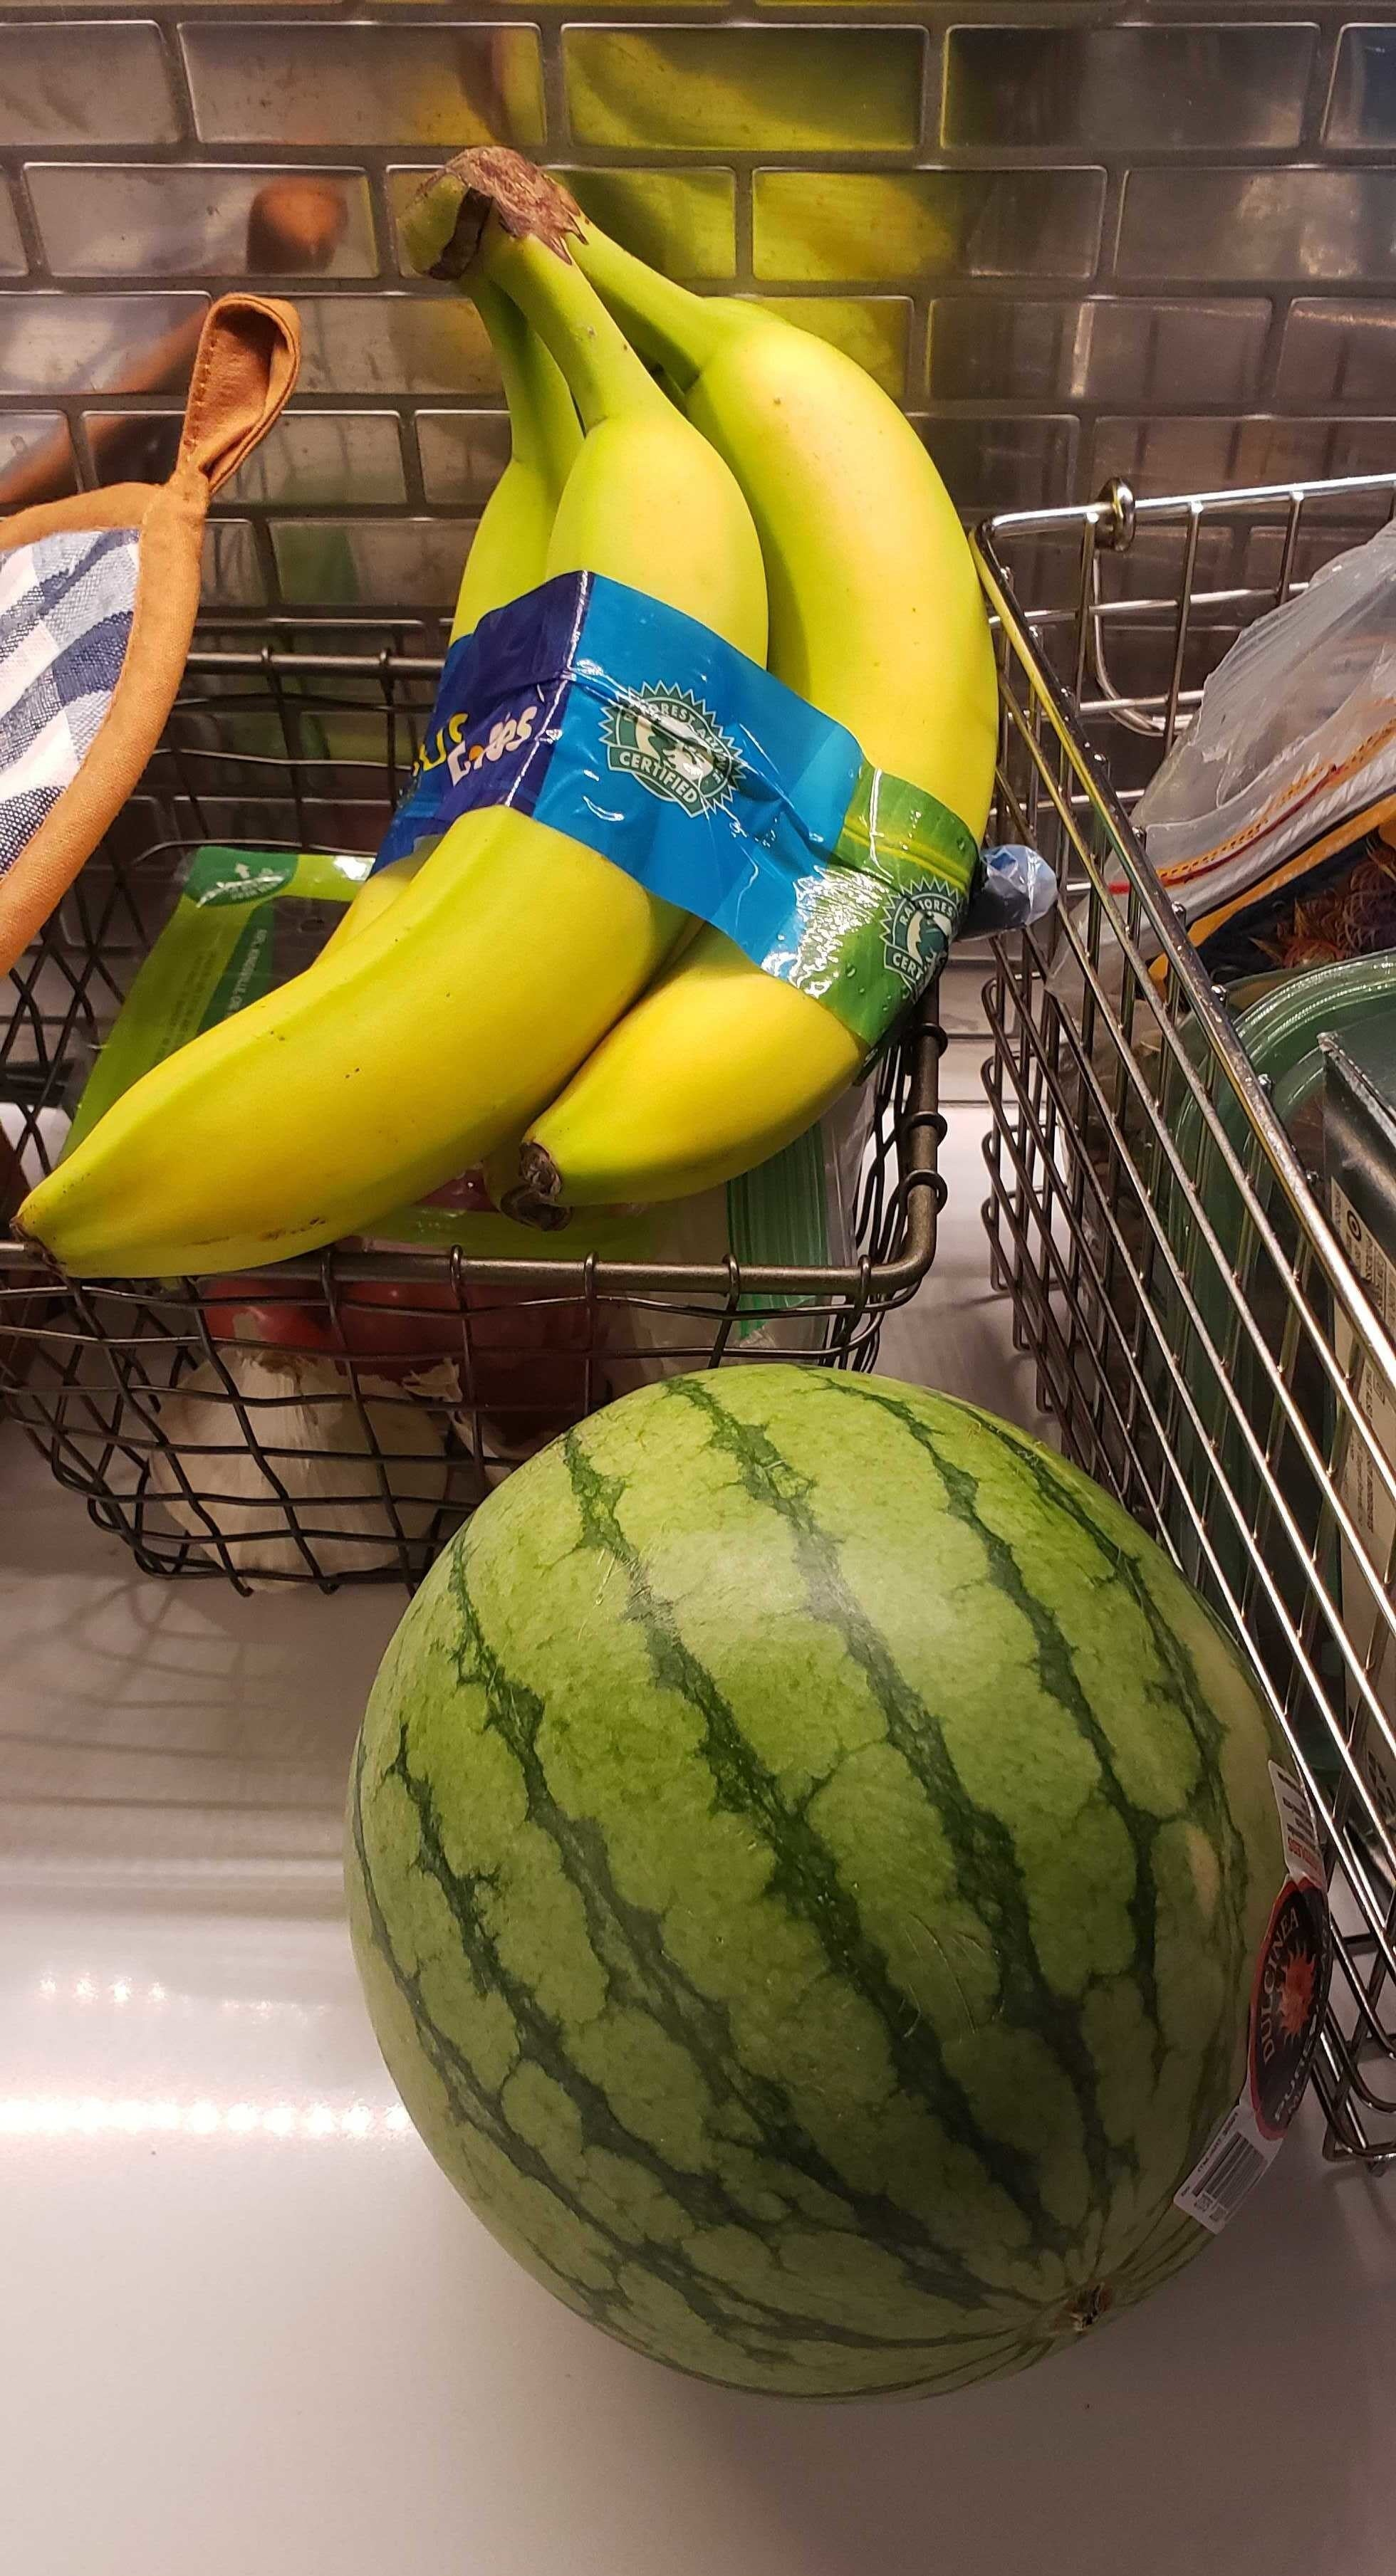 Bunch of bananas sitting in a basket and a small watermelon on the counter